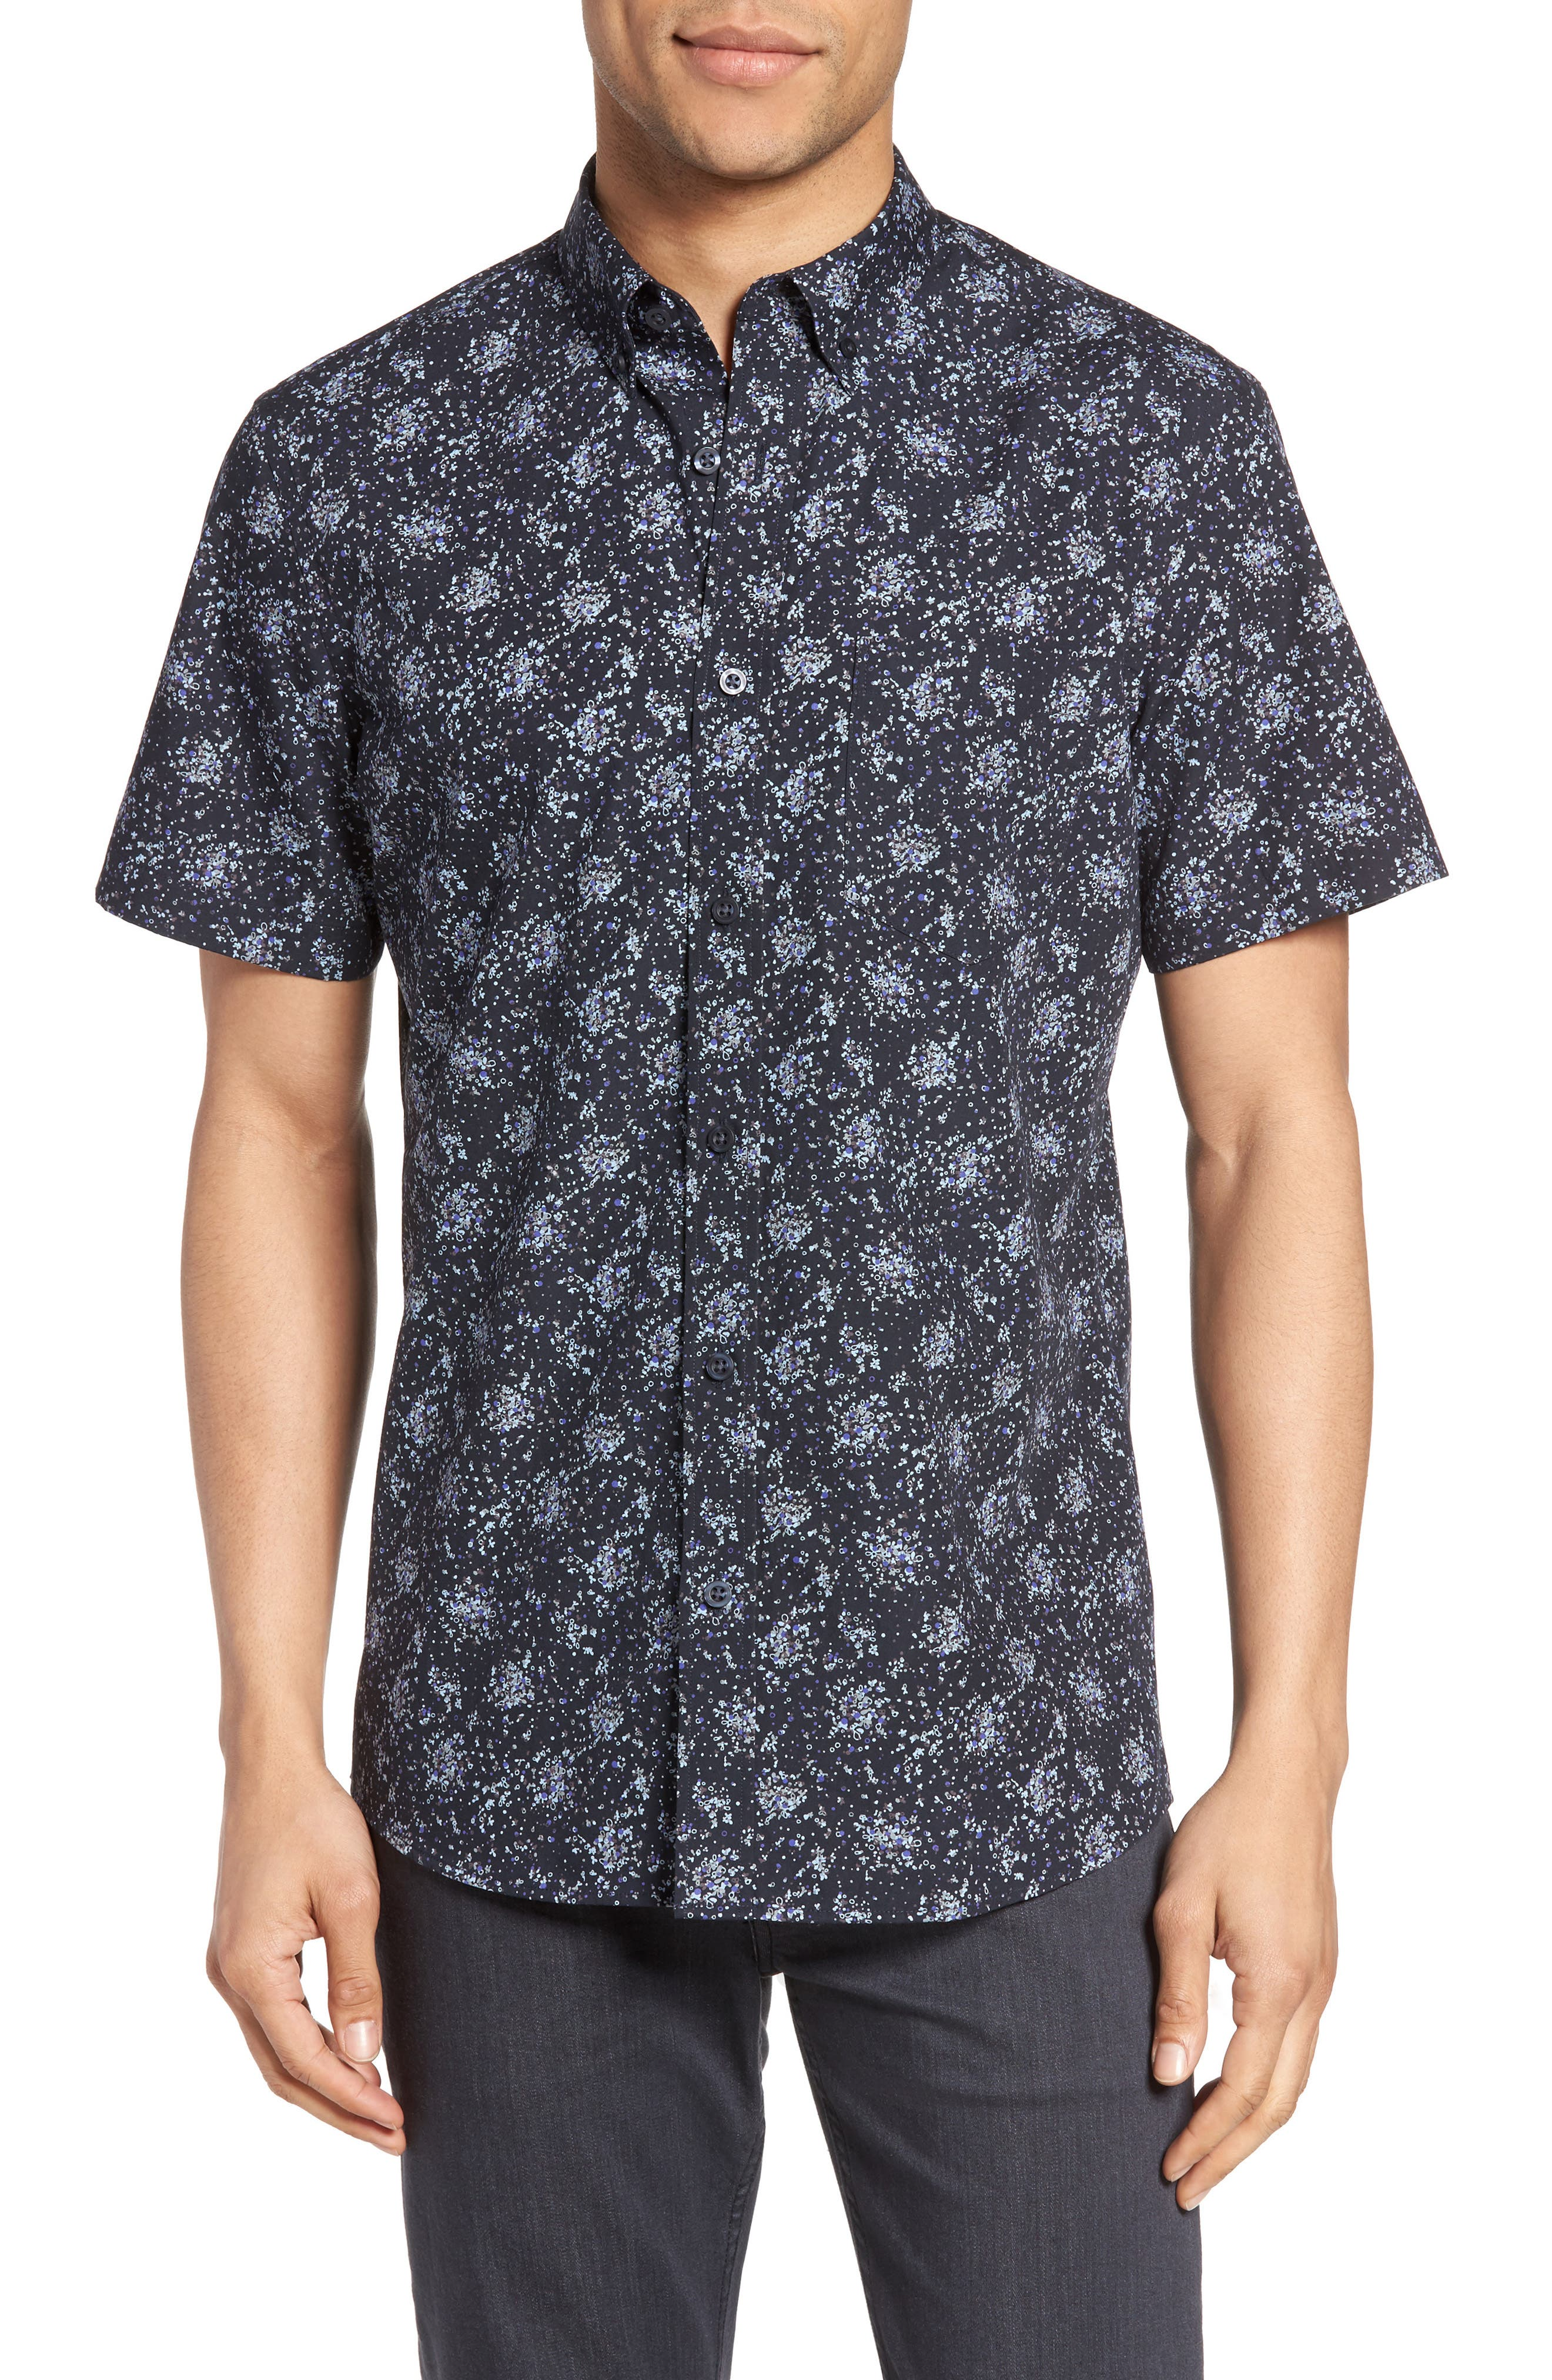 NORDSTROM MENS SHOP Slim Fit Print Sport Shirt